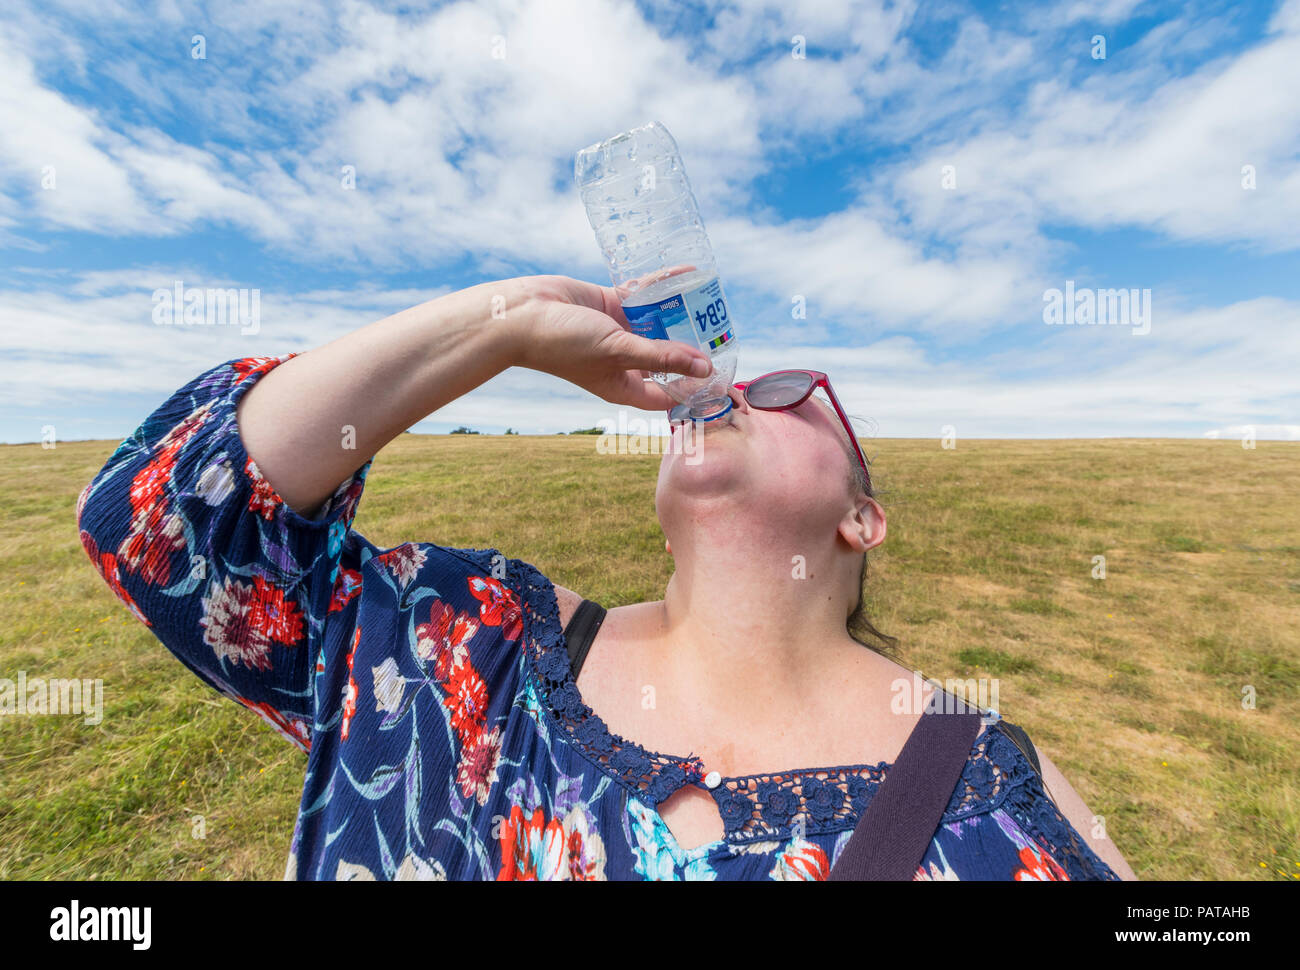 Woman drinking water from a bottle to stay hydrated on a very hot summer day during a heatwave in the UK in July 2018. Refreshed. - Stock Image